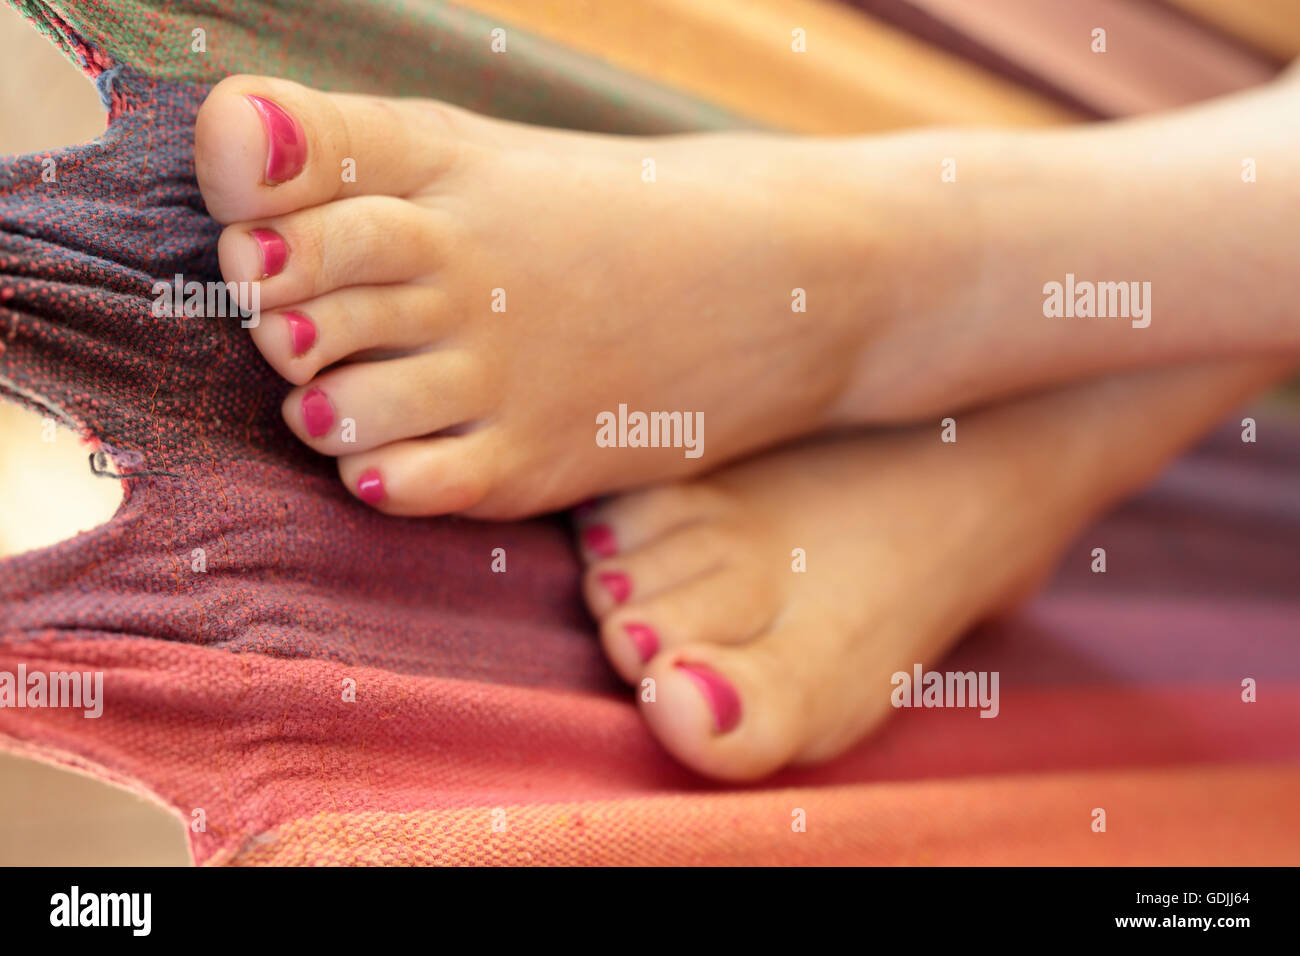 Woman Feet Painted Nails In Stock Photos & Woman Feet Painted Nails ...